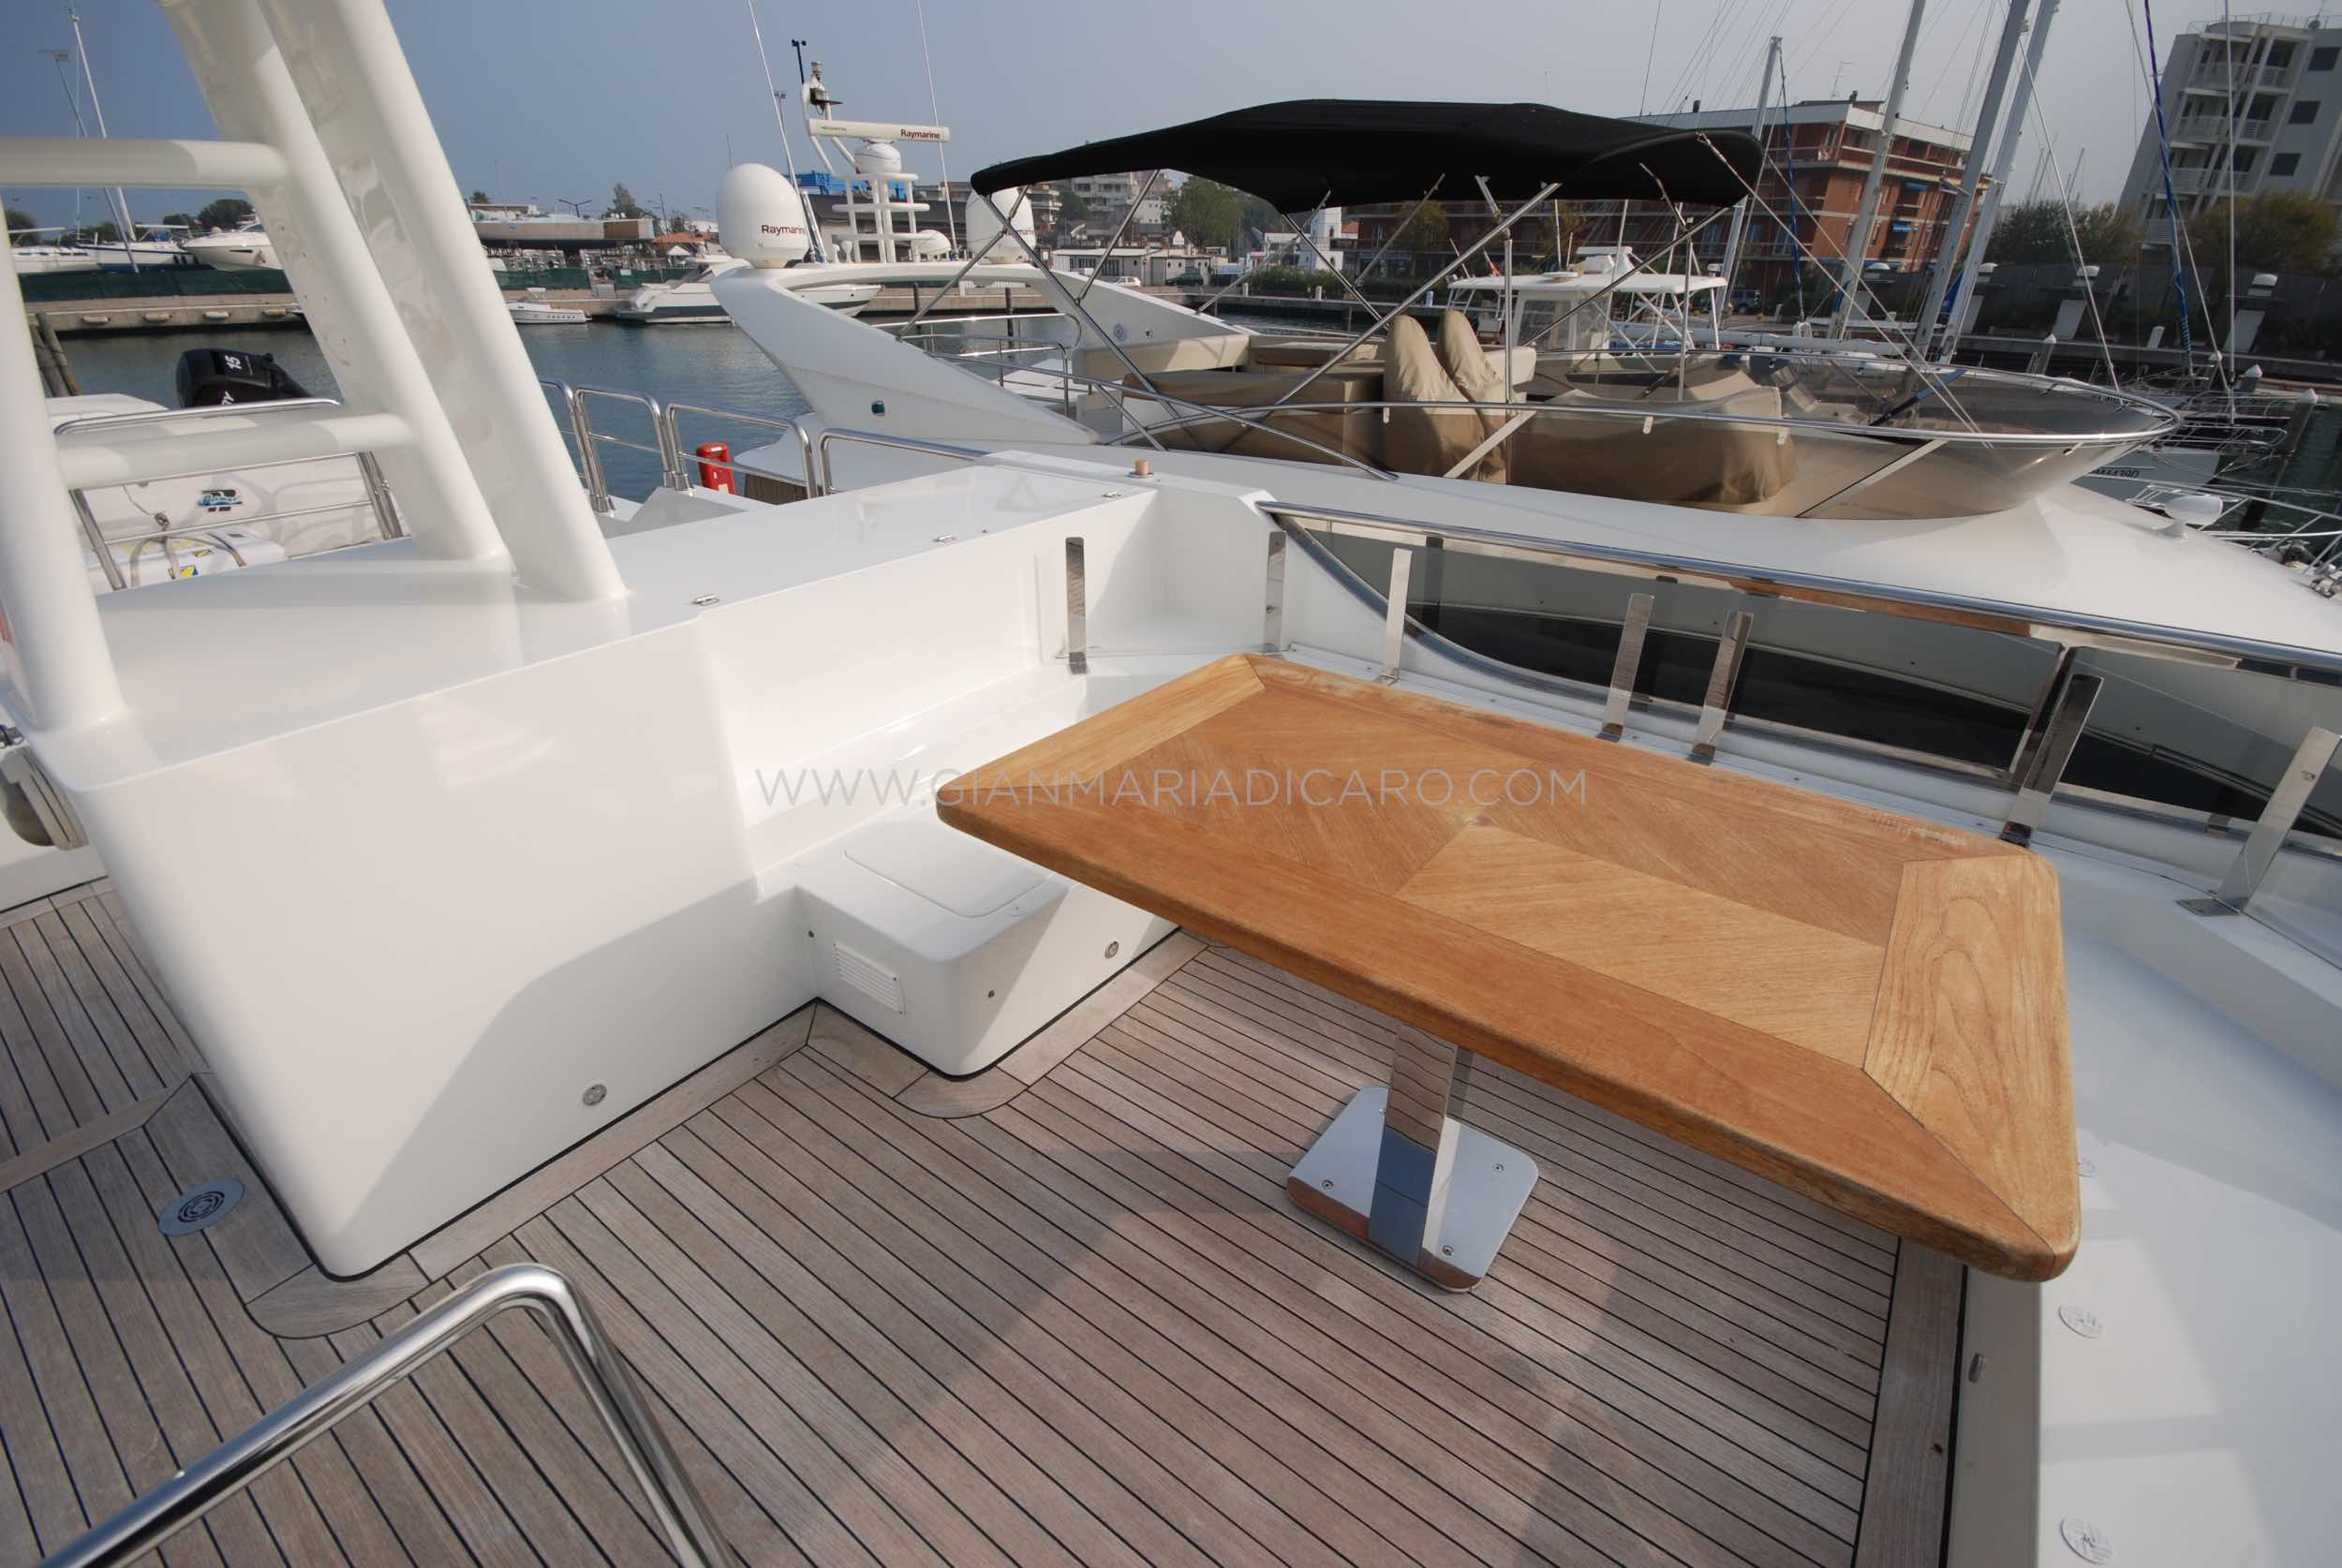 emys-yacht-22-unica-for-sale-100.jpg